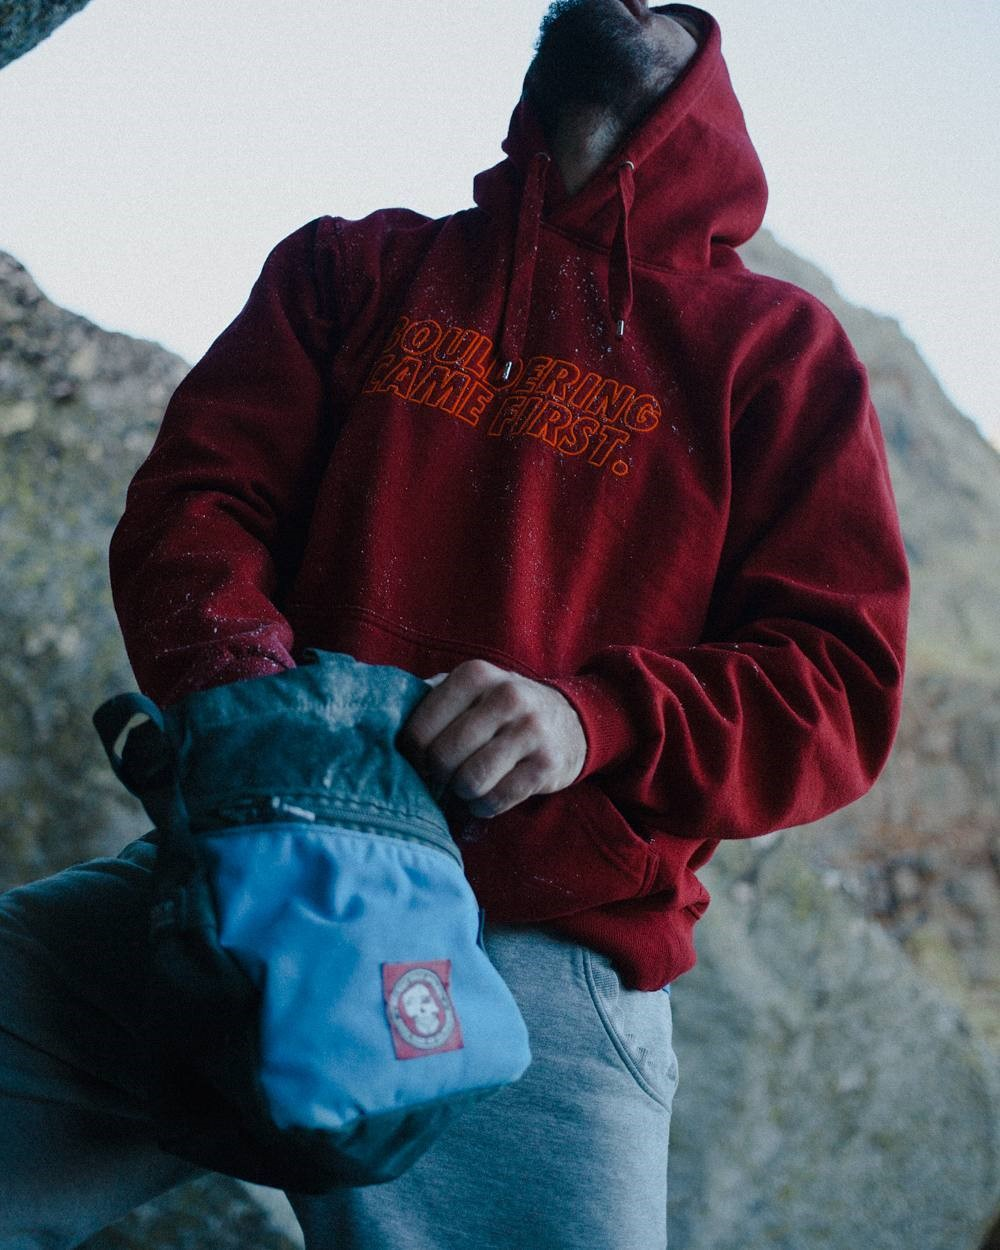 WildBounds Christmas Gift Guide, Belmez Face Boulder Bucket Chalk bag, for bouldering and Climbing.